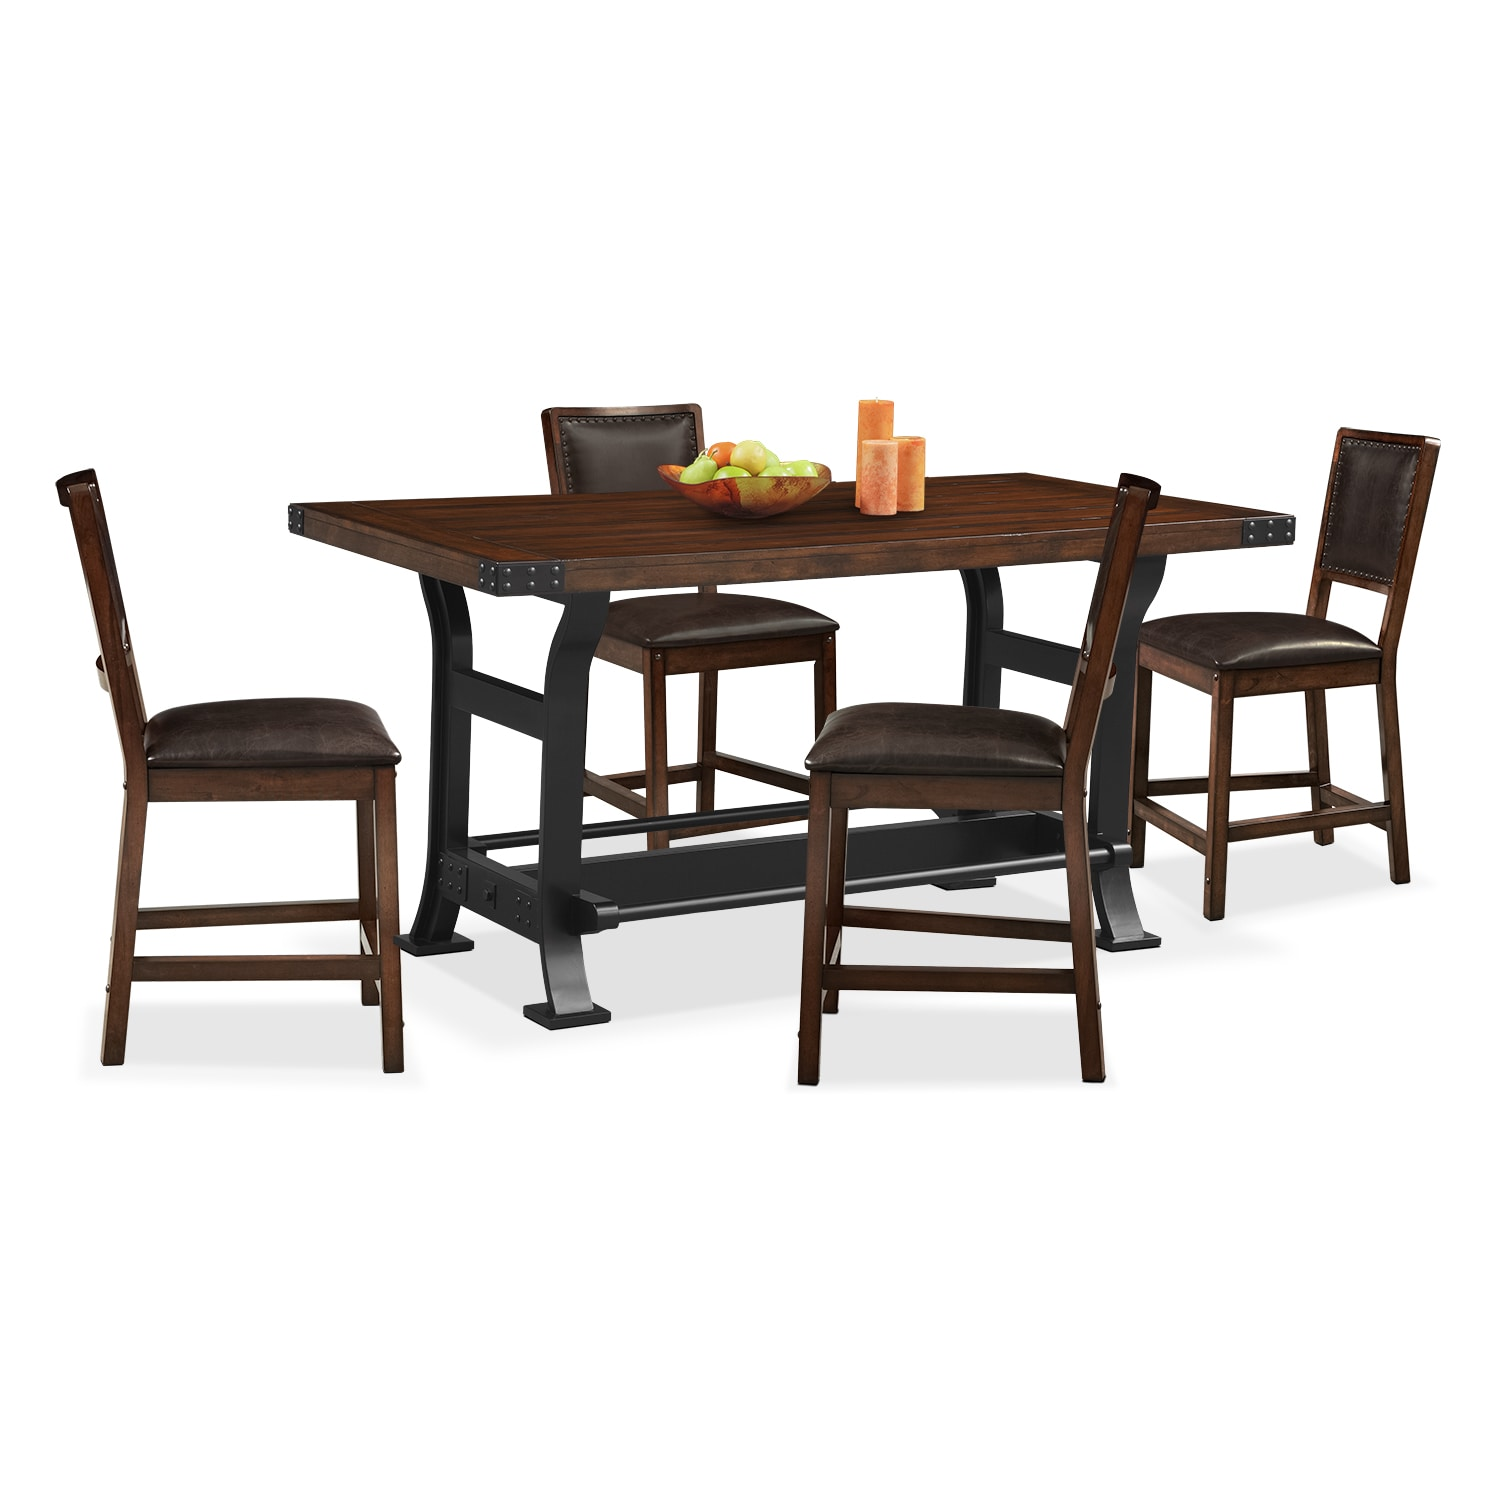 Newcastle counter height table and 4 chairs mahogany american signature furniture - Height dining room table ...